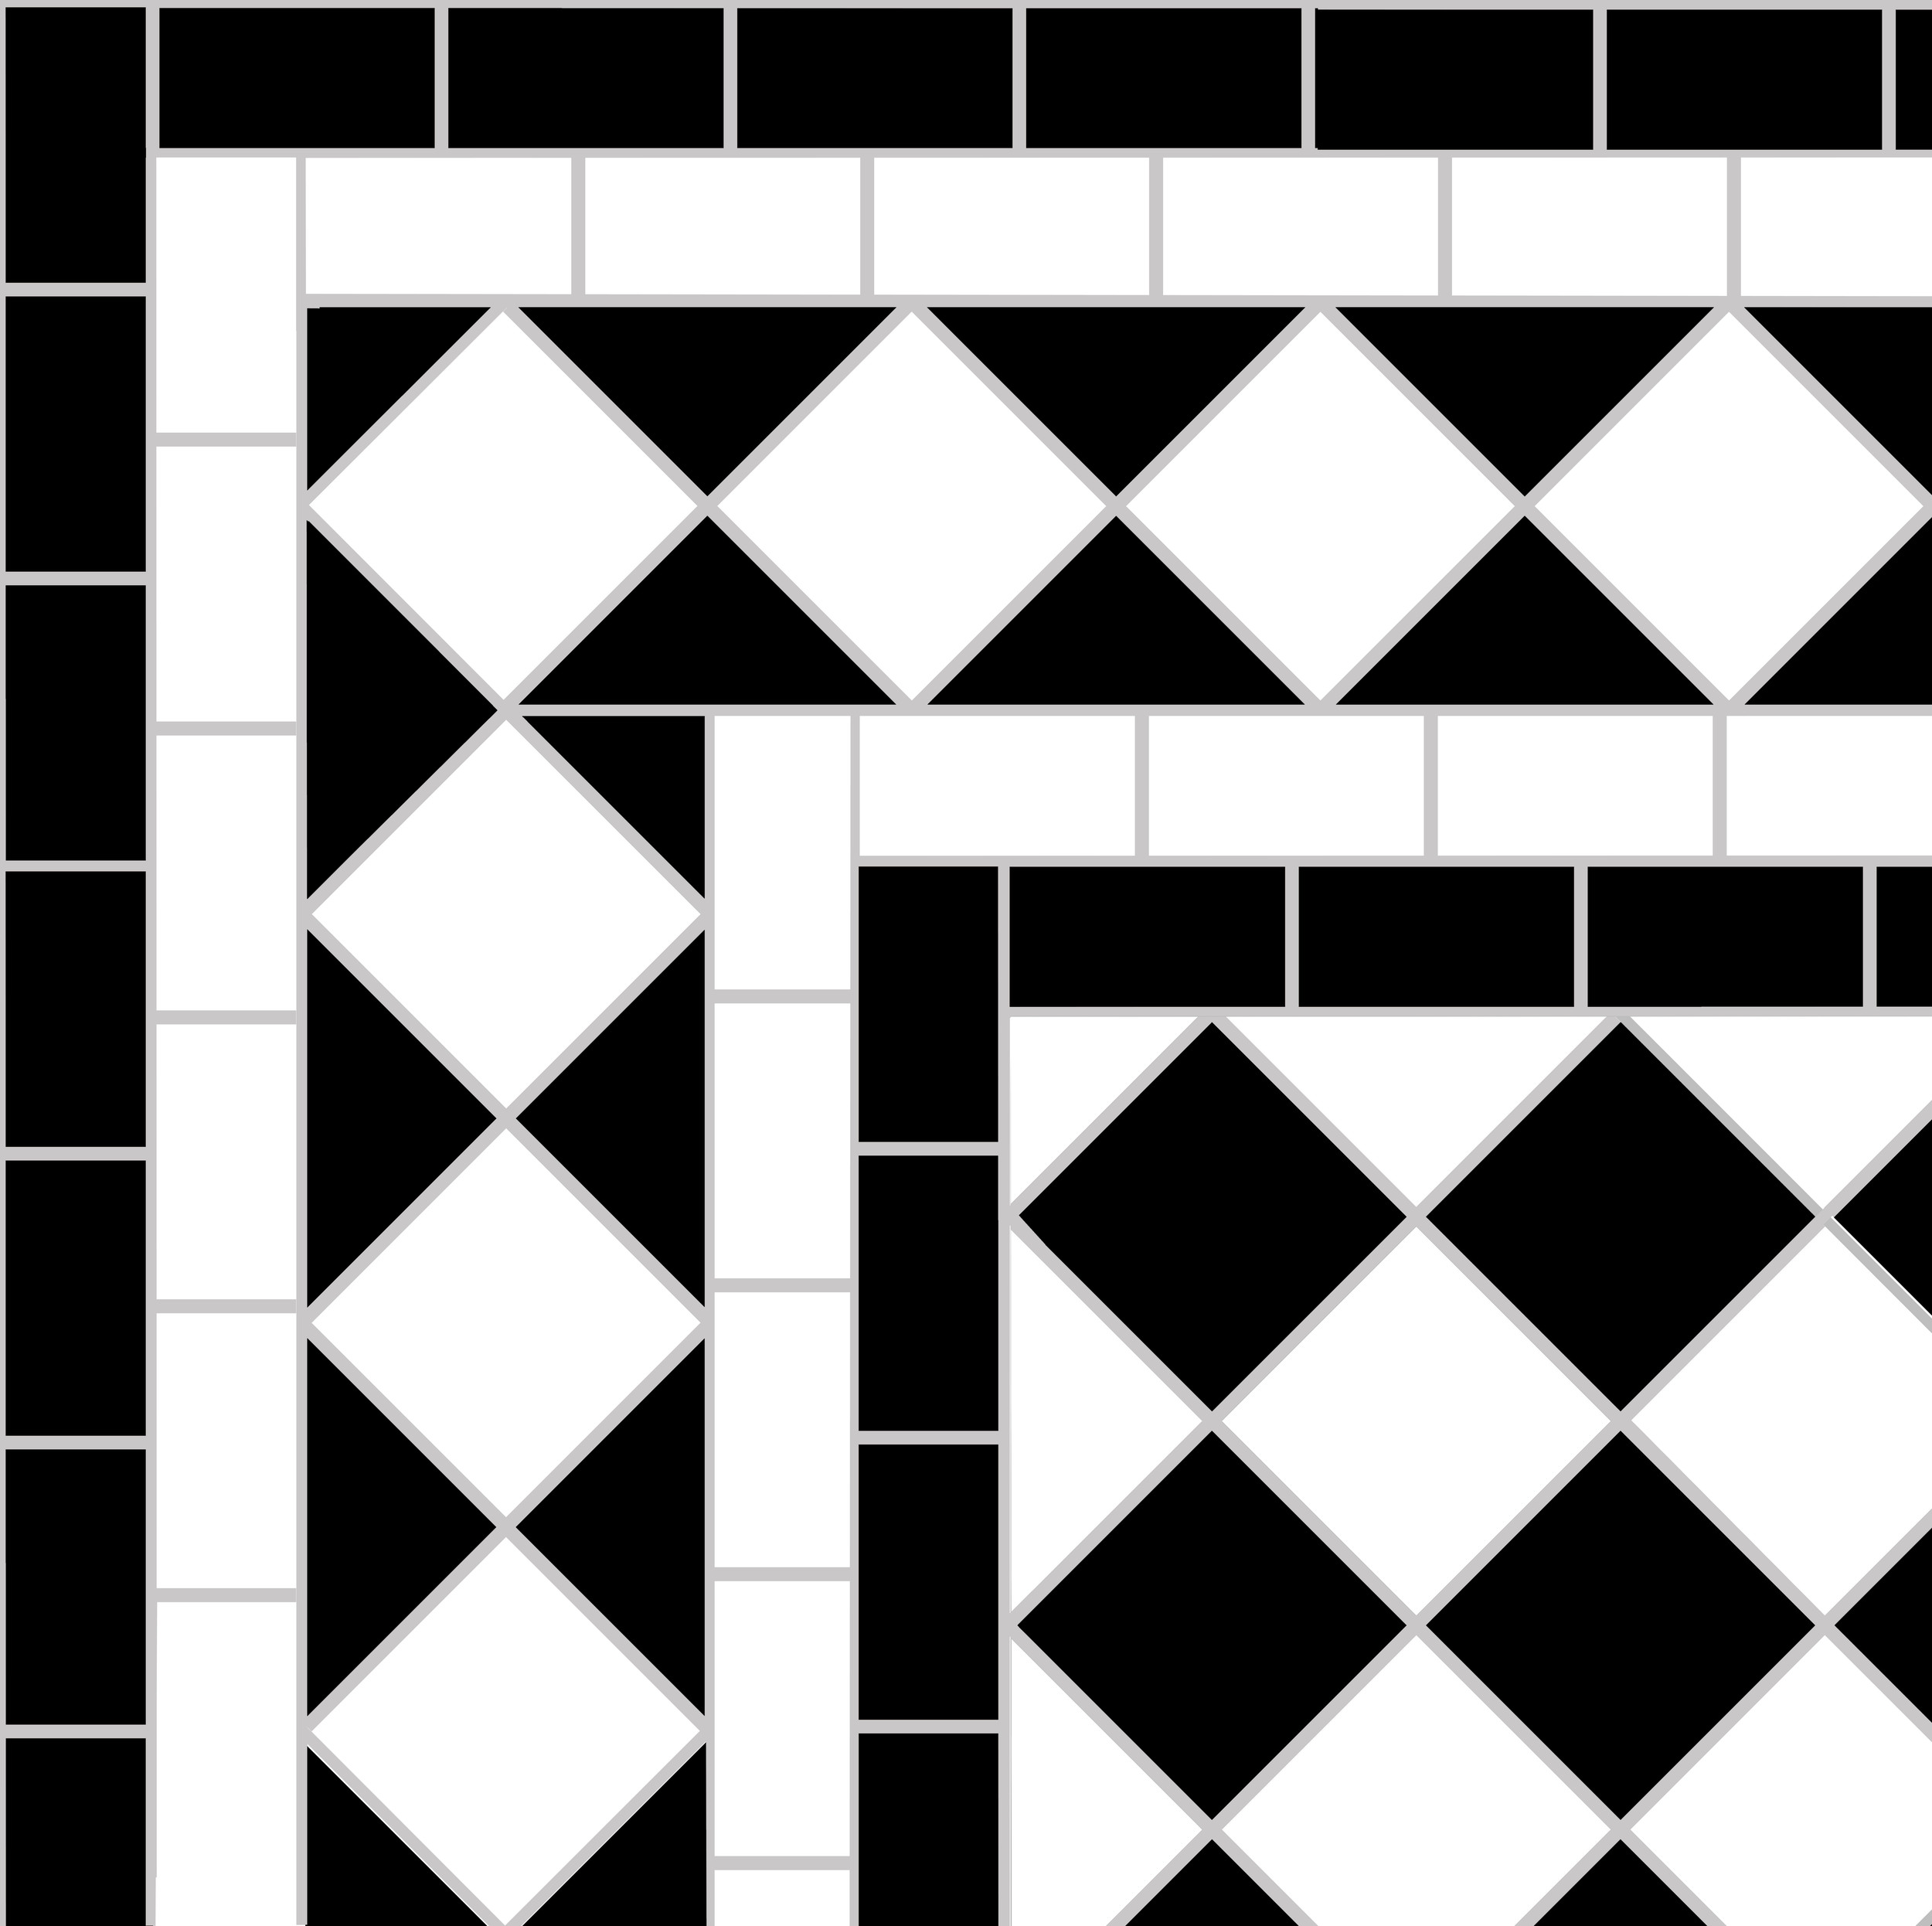 Black and white victorian tile design showing a white   diamond border   with four lines.